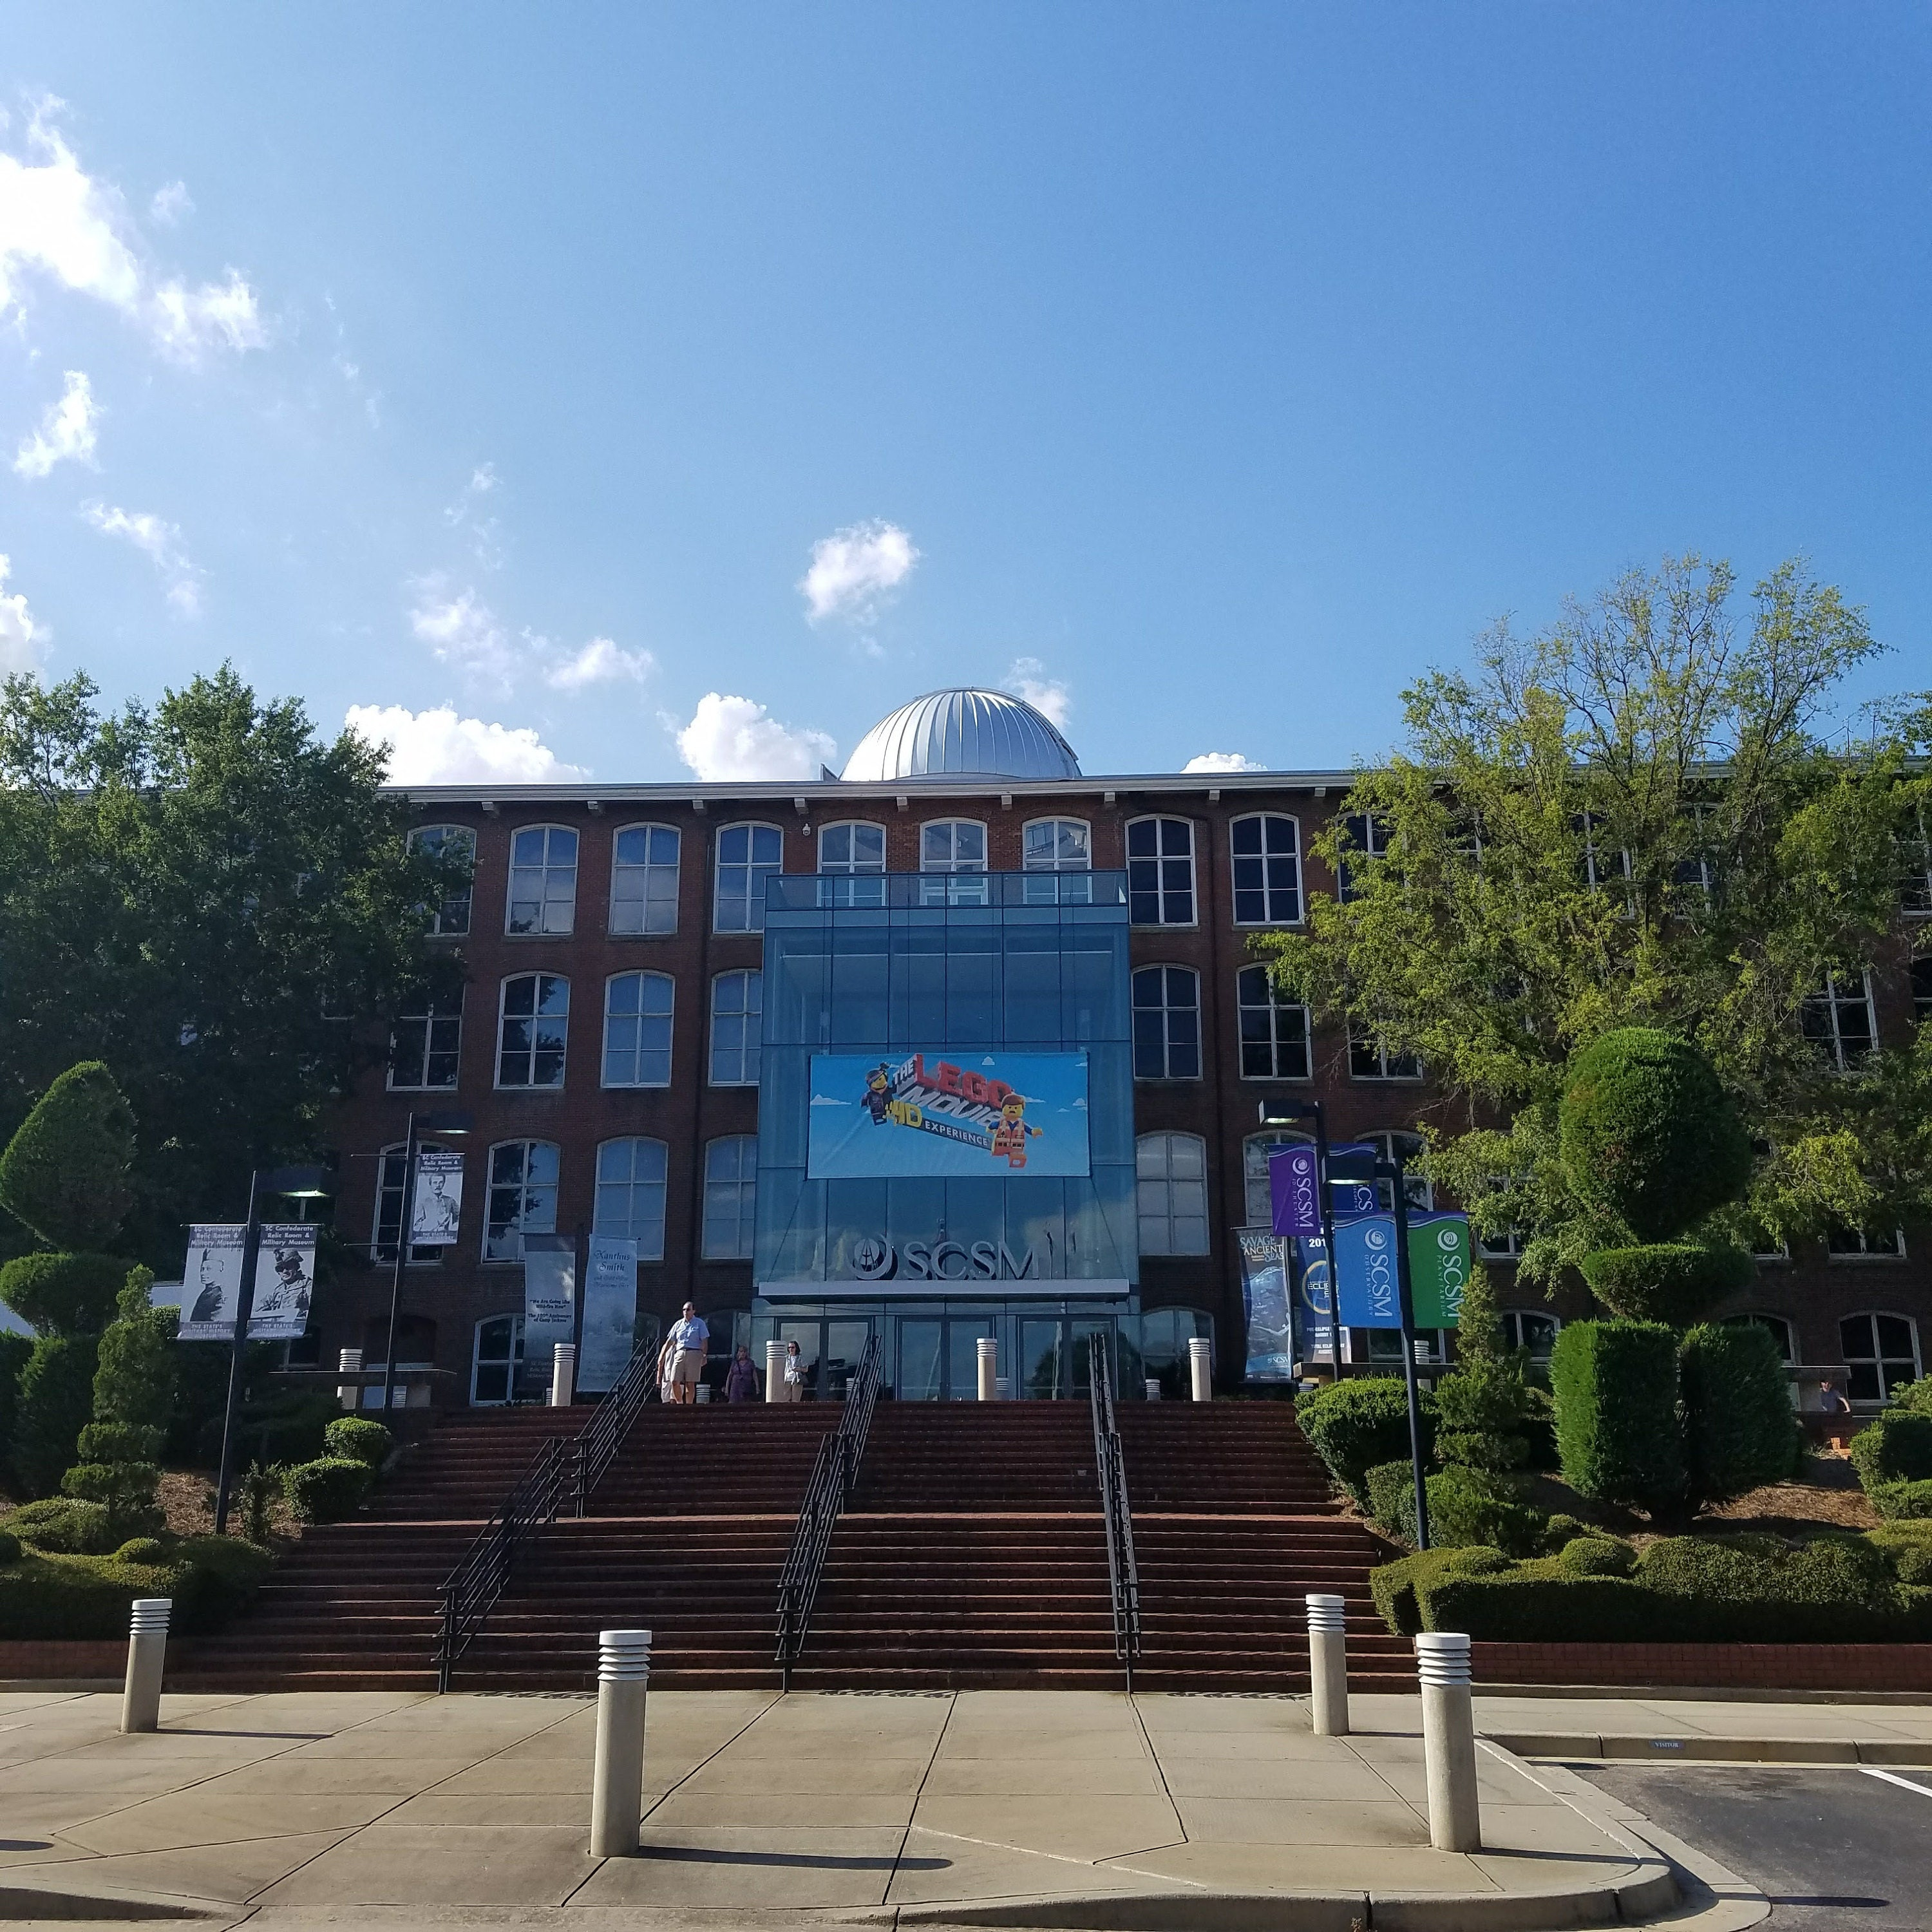 South Carolina State Museum Entrance | Nerd in the Brain